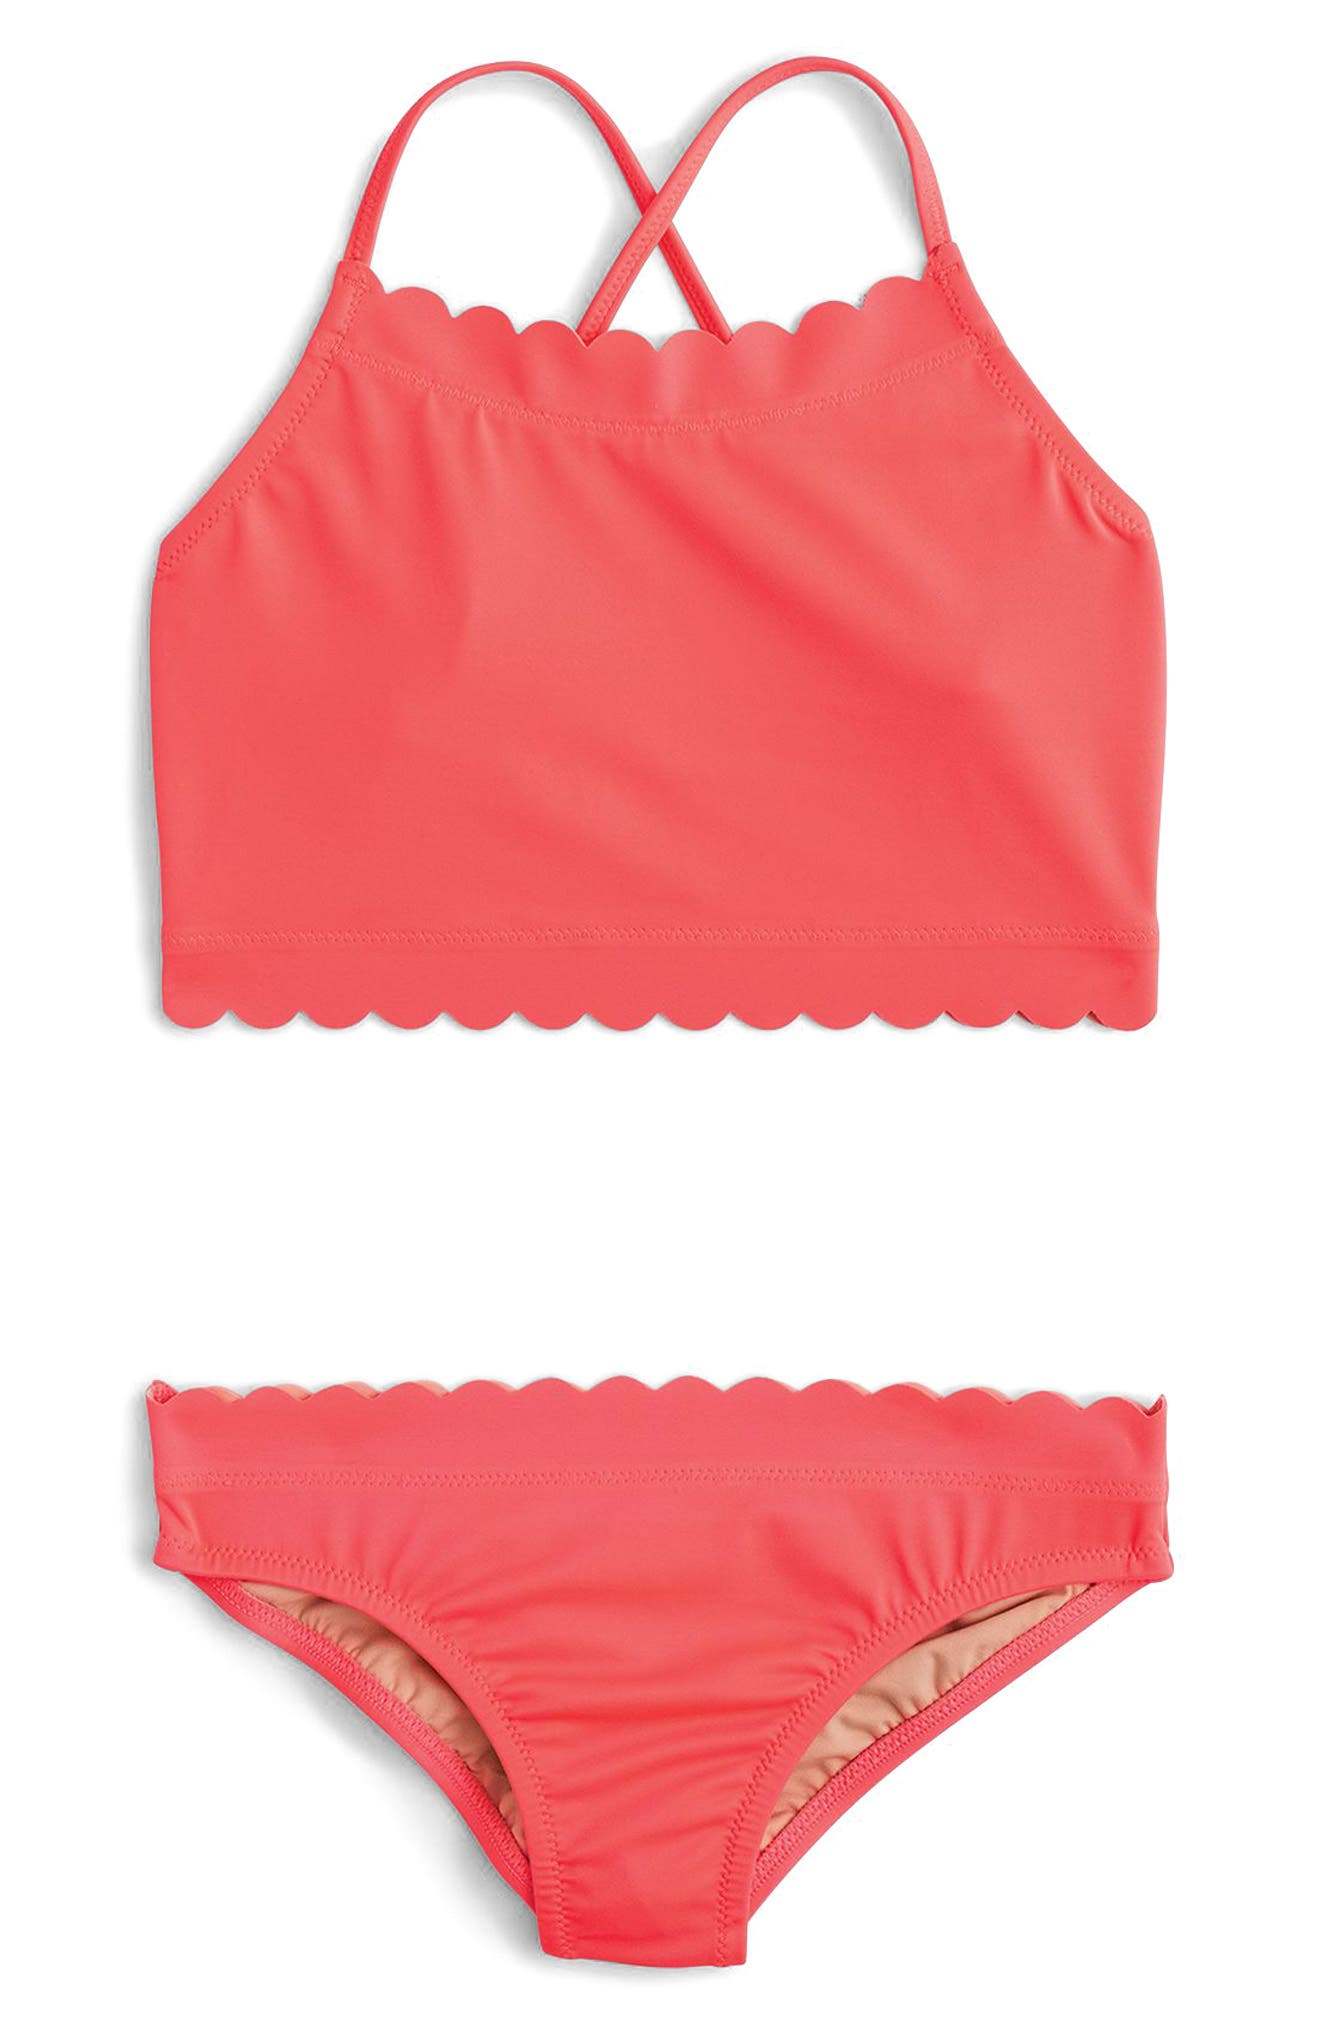 crewcuts by J.Crew Scalloped Two-Piece Swimsuit (Toddler Girls, Little Girls & Big Girls)